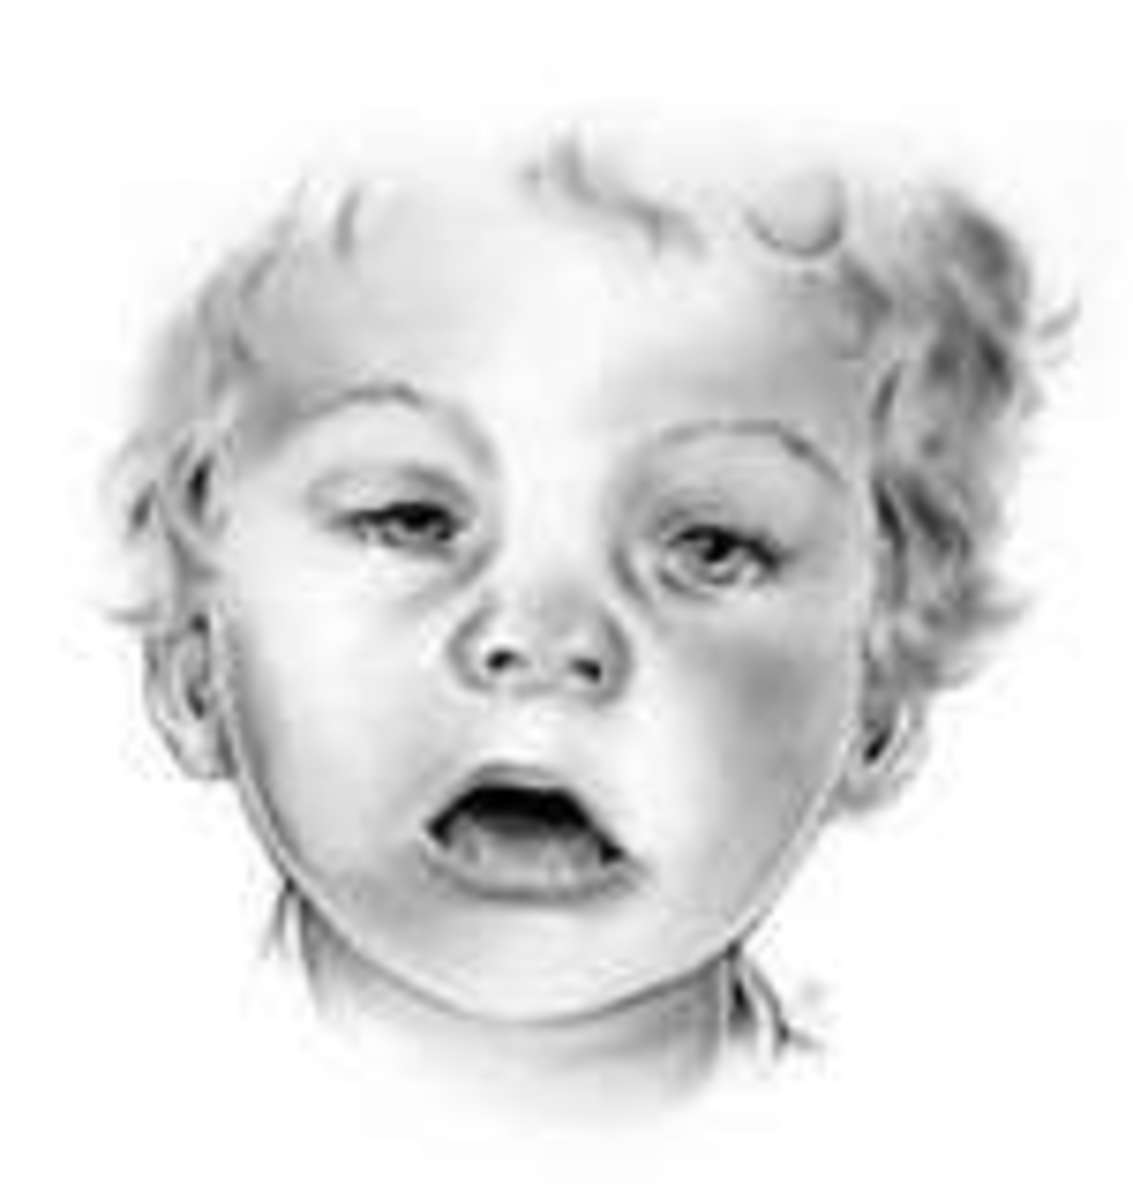 A Child with Fetal Alcohol Syndrome (FAS) -My Day At School